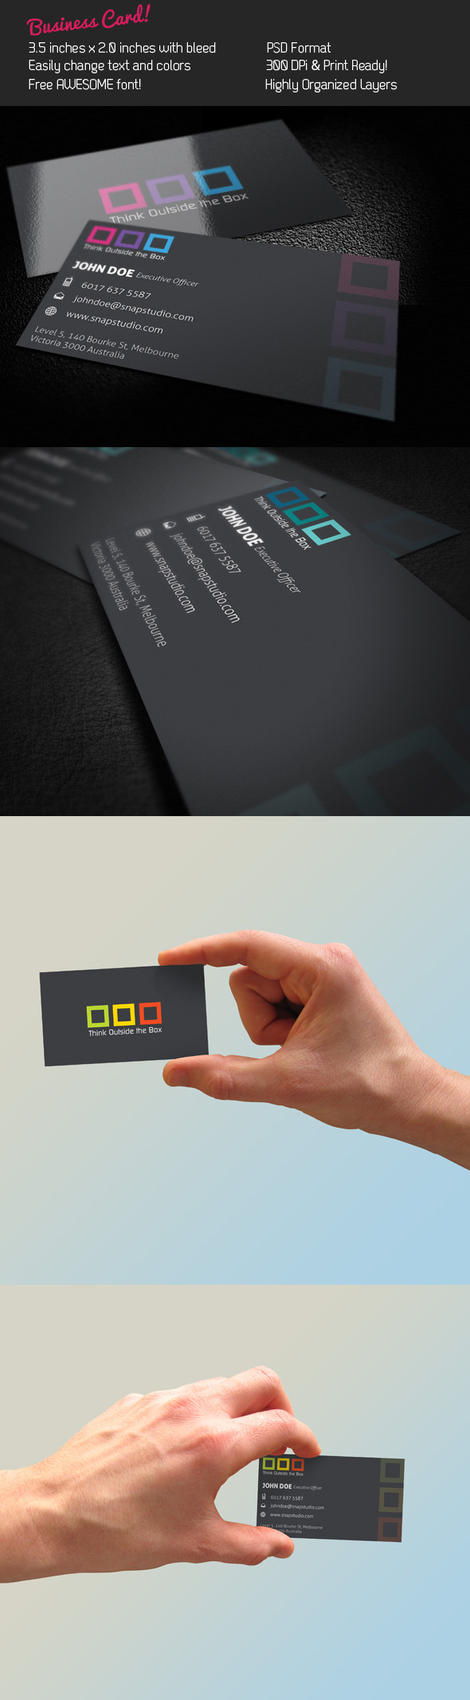 Box business card by kaixergroup on deviantart box business card by kaixergroup reheart Gallery